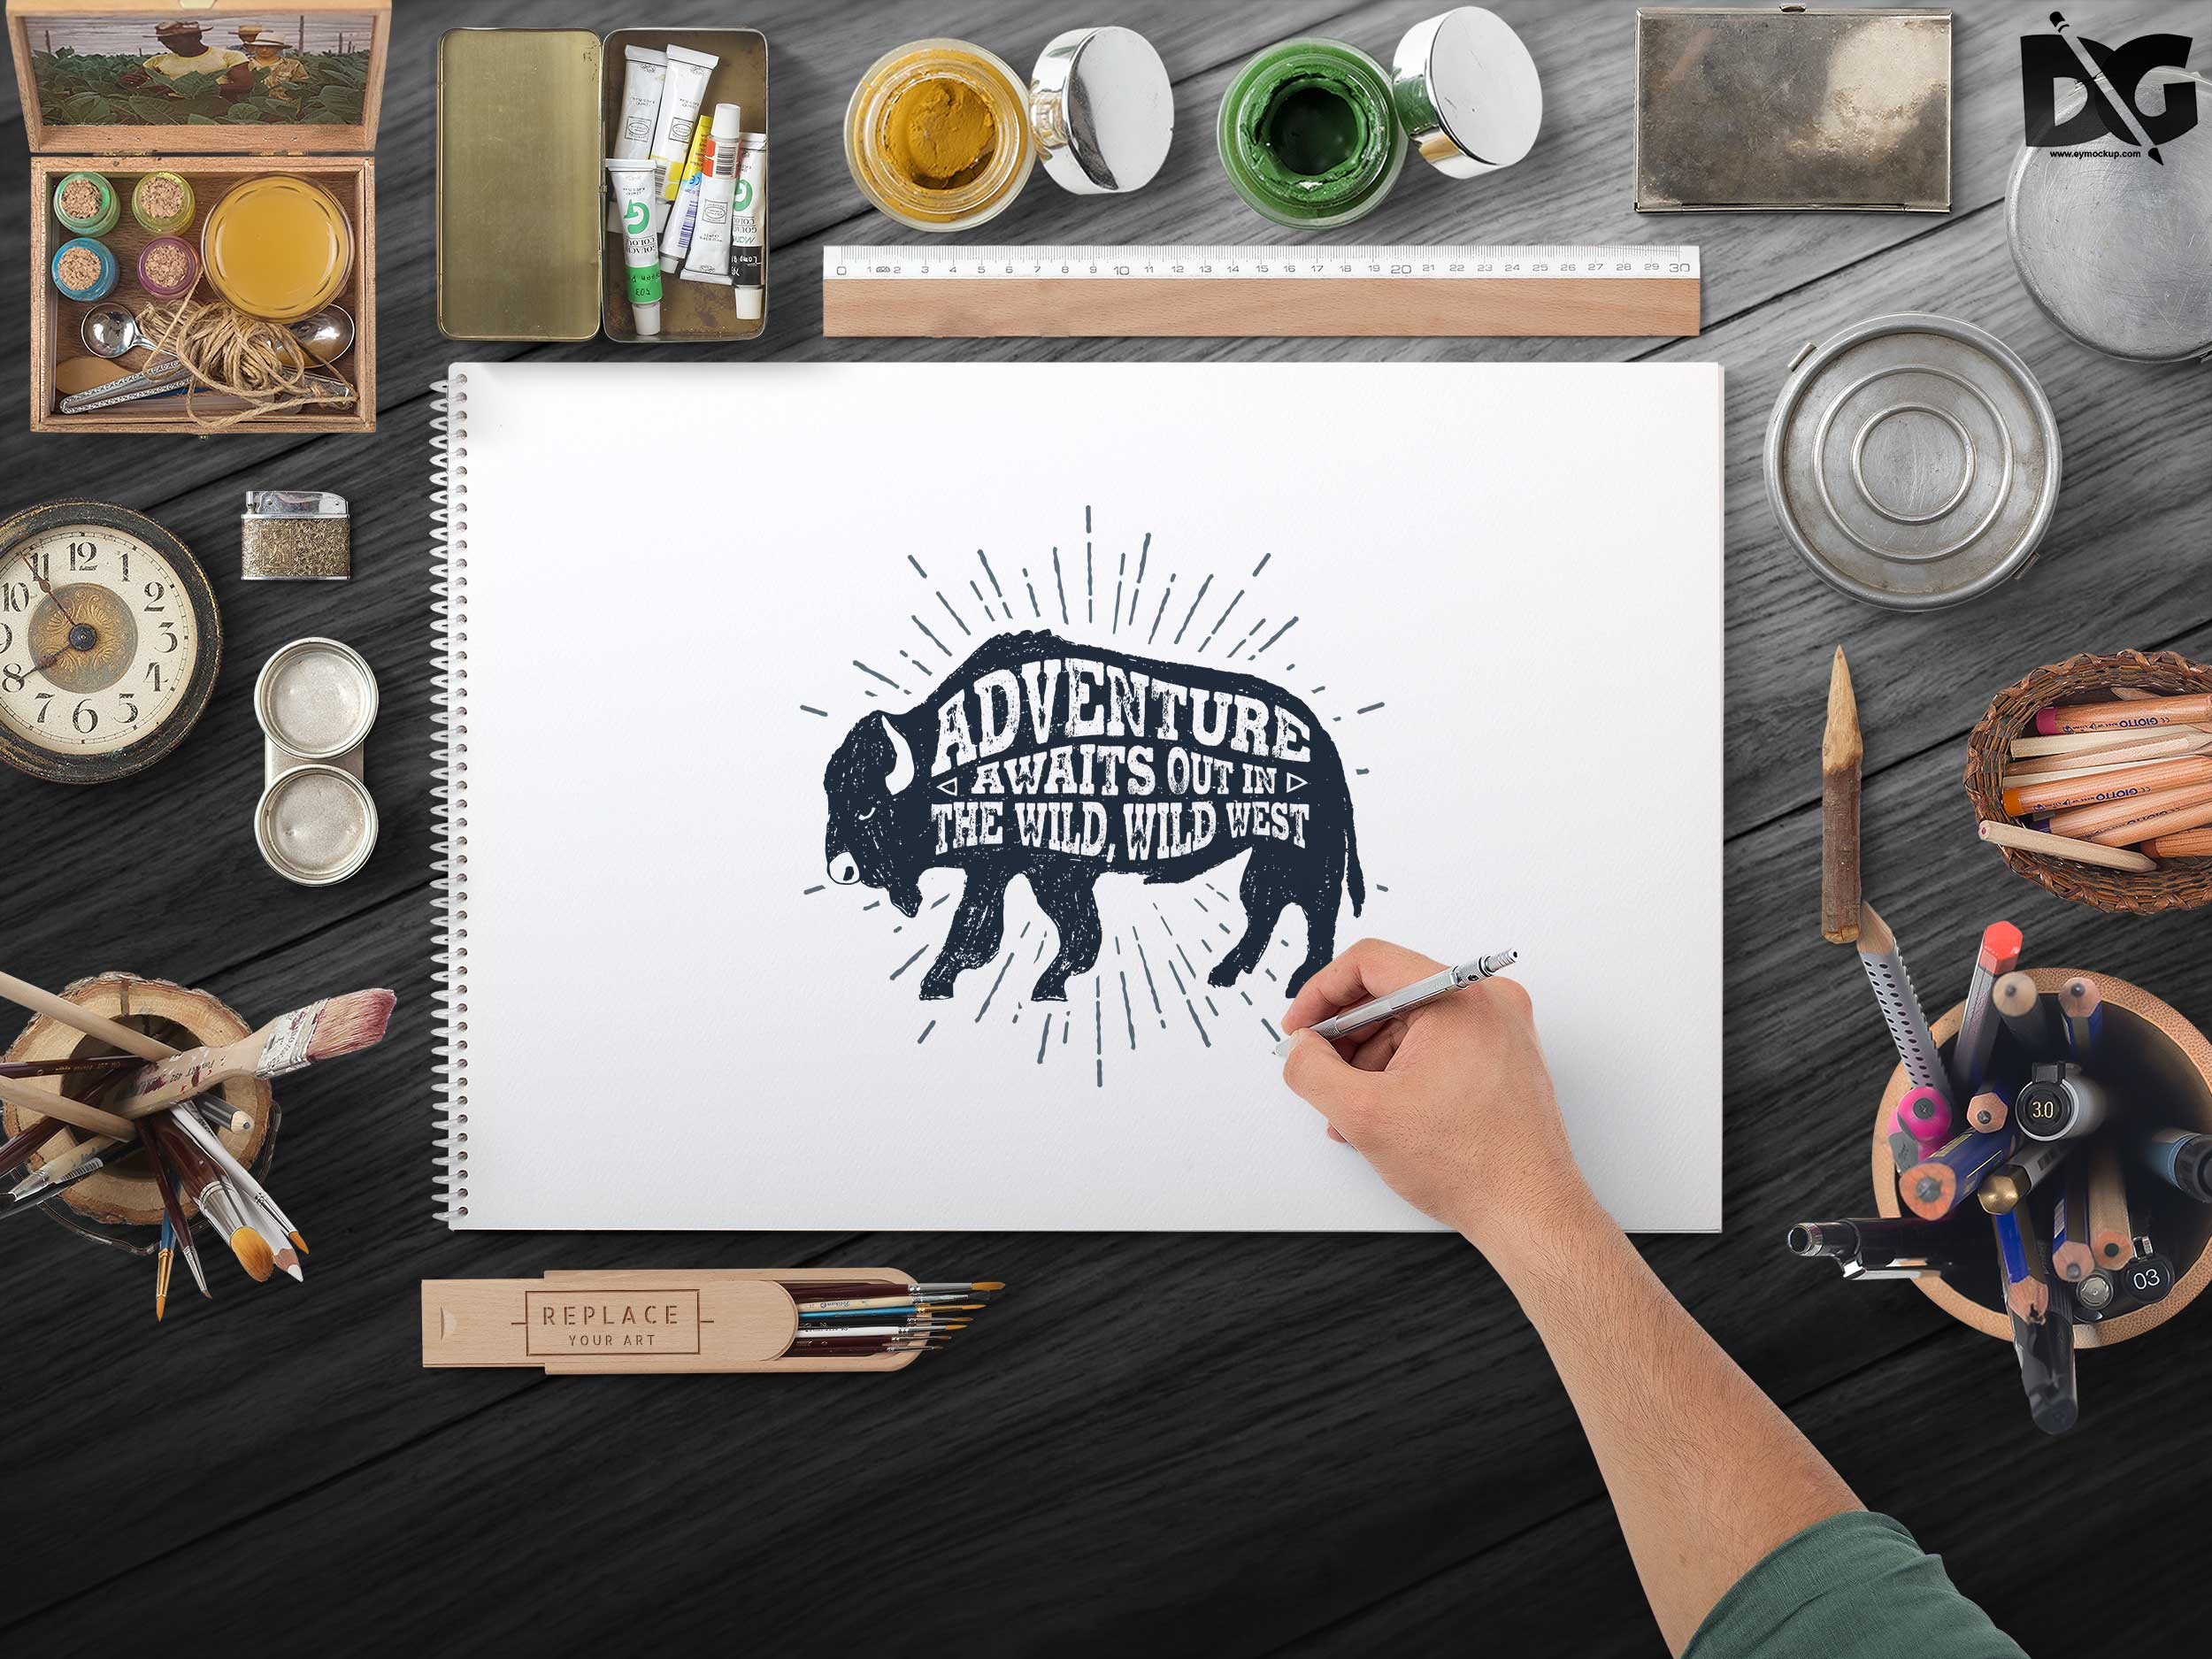 Free PSD Artwork Design Art Lab Mockup